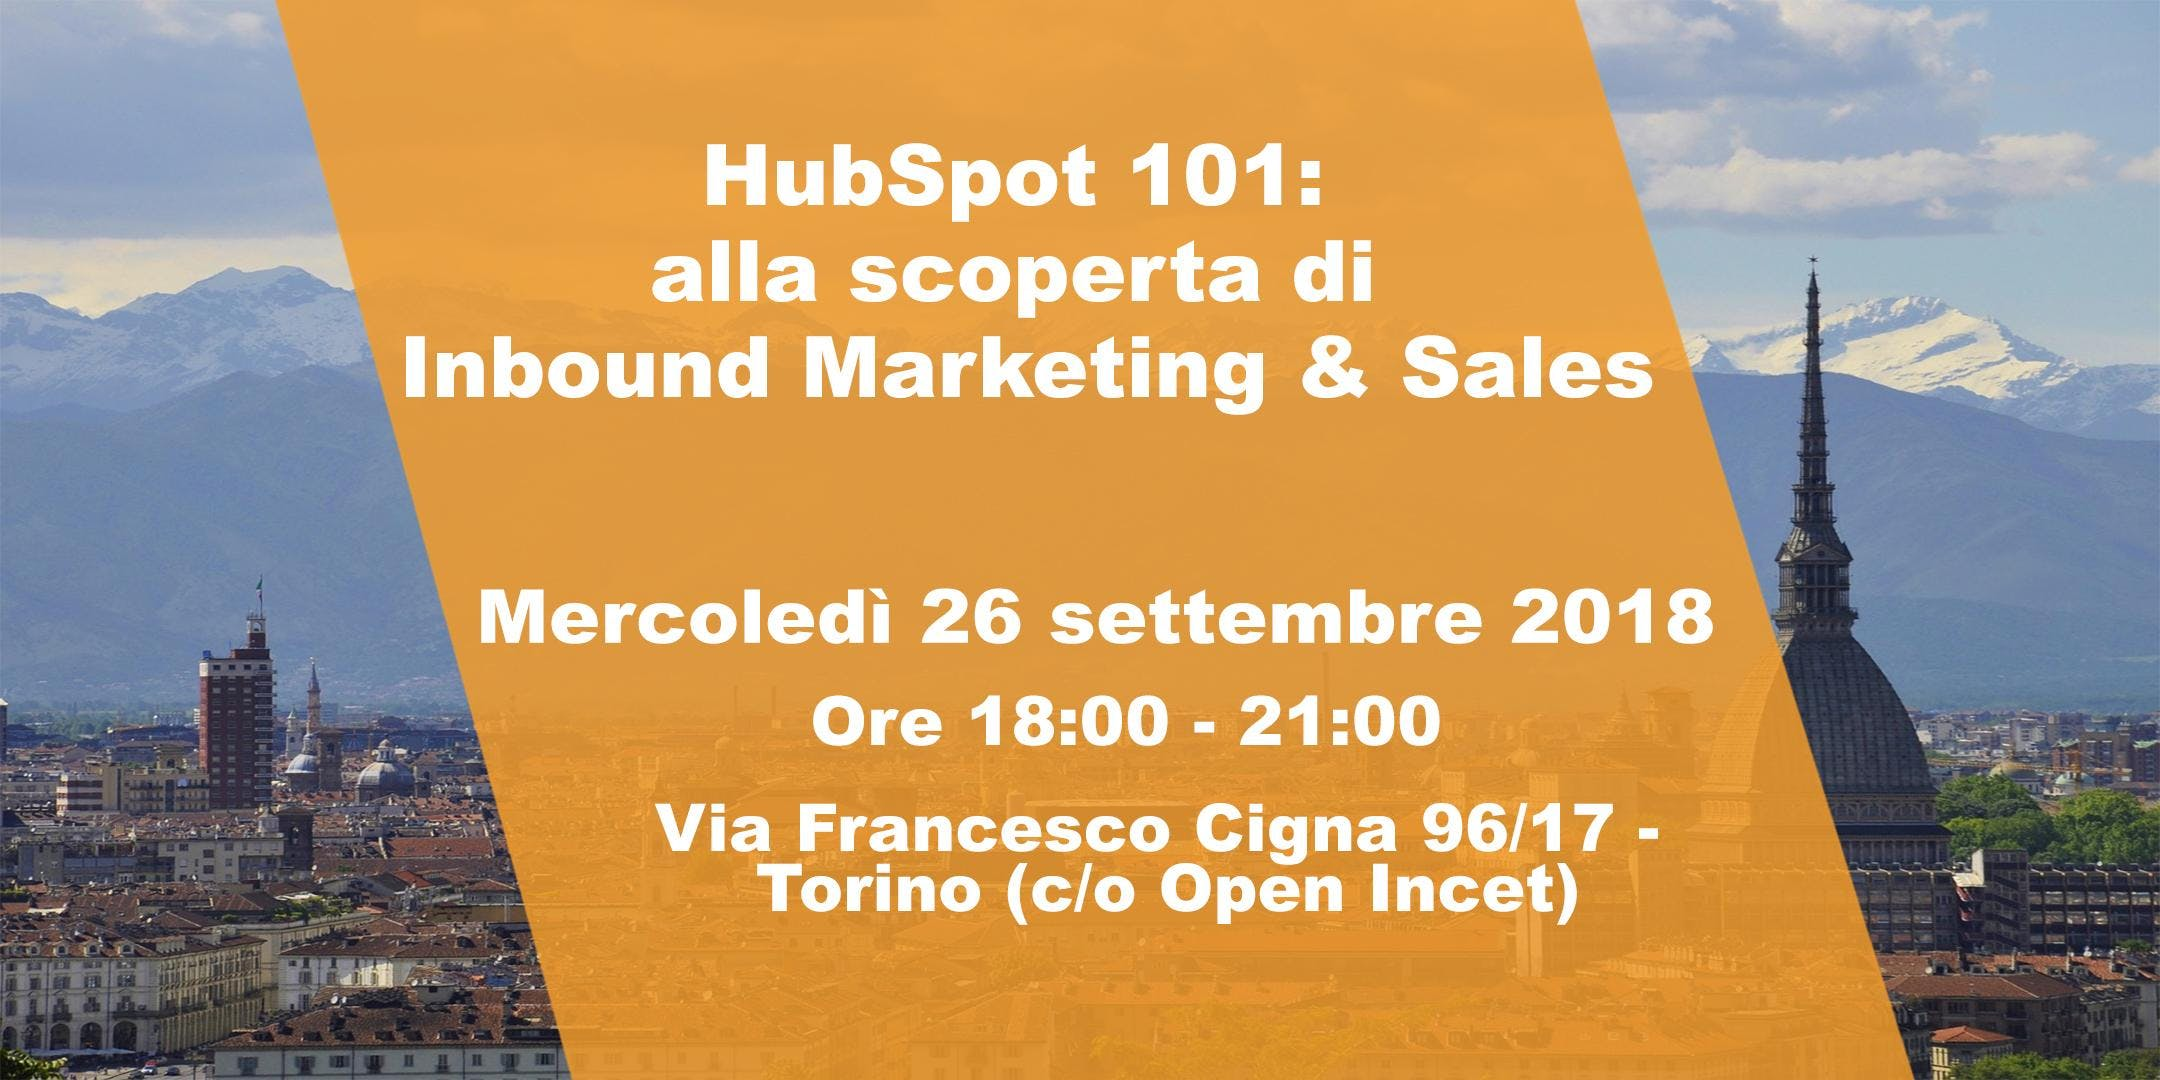 HubSpot 101: alla scoperta di Inbound Marketing & Sales